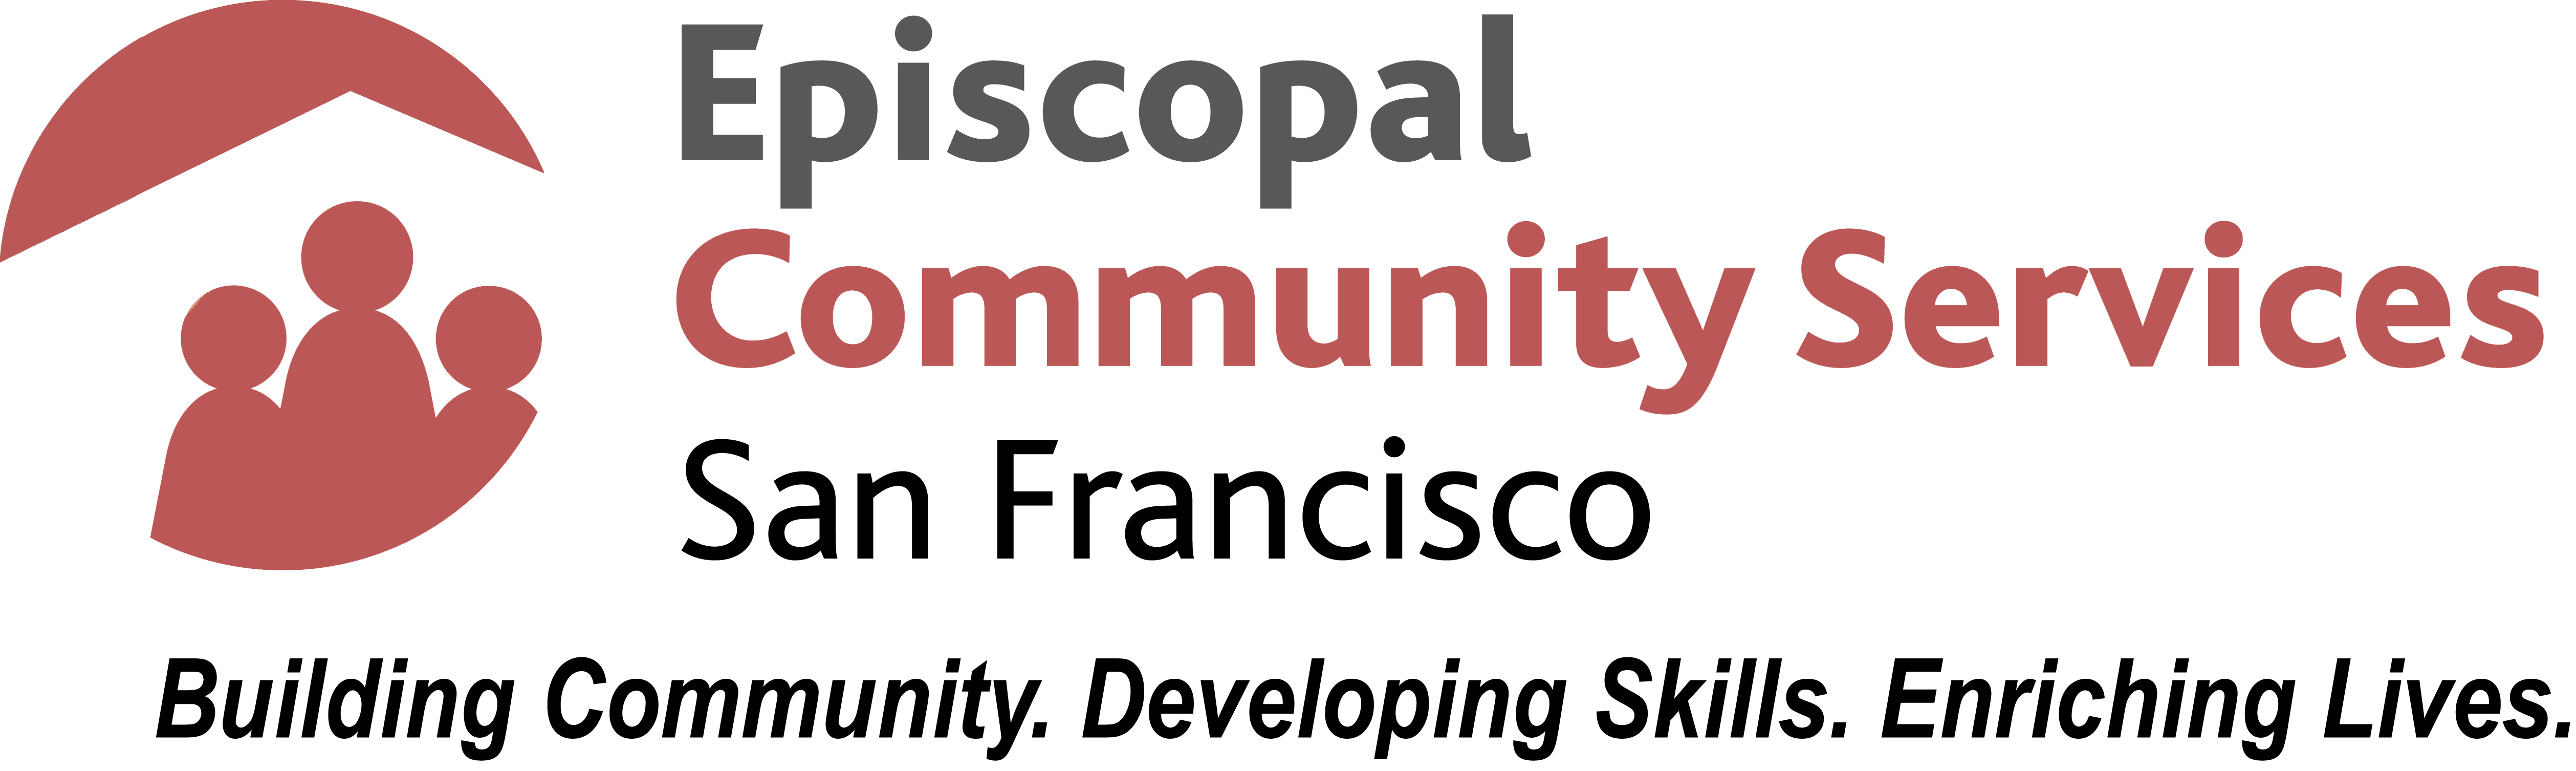 Episcopal Community Services - CHEFS Program